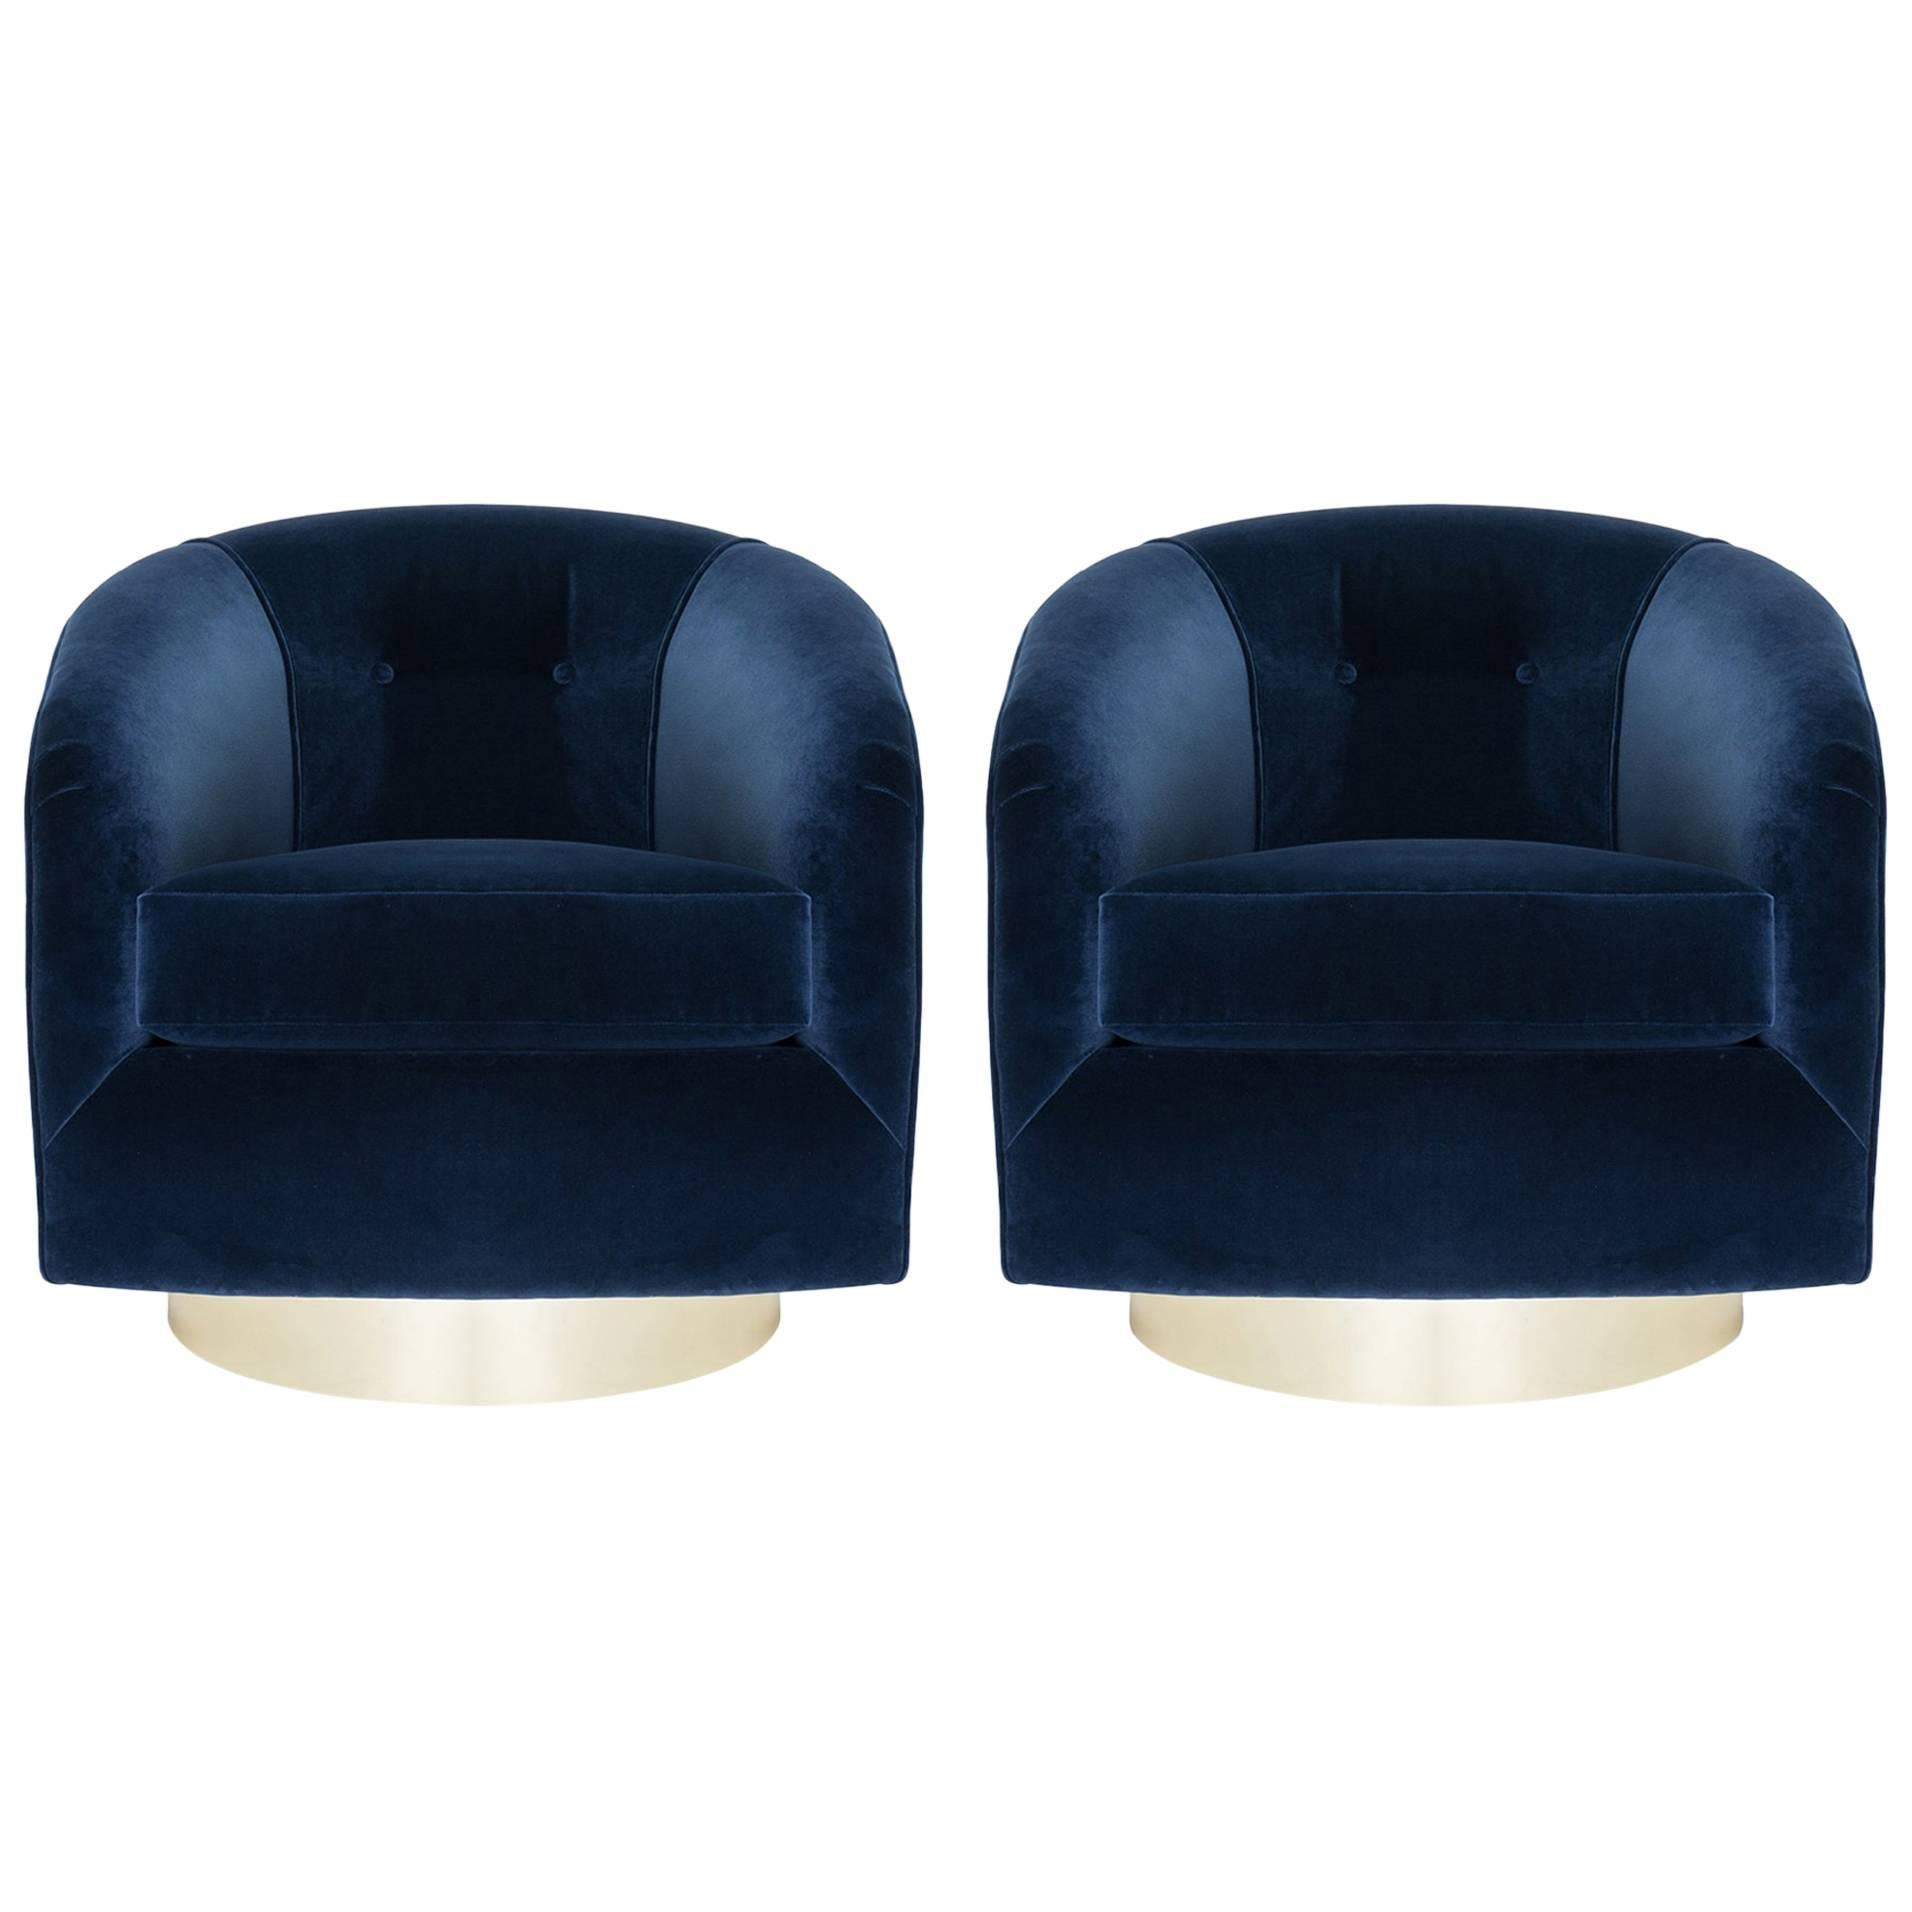 Swivel Tub Chairs In Navy Velvet With Polished Brass Bases, Pair